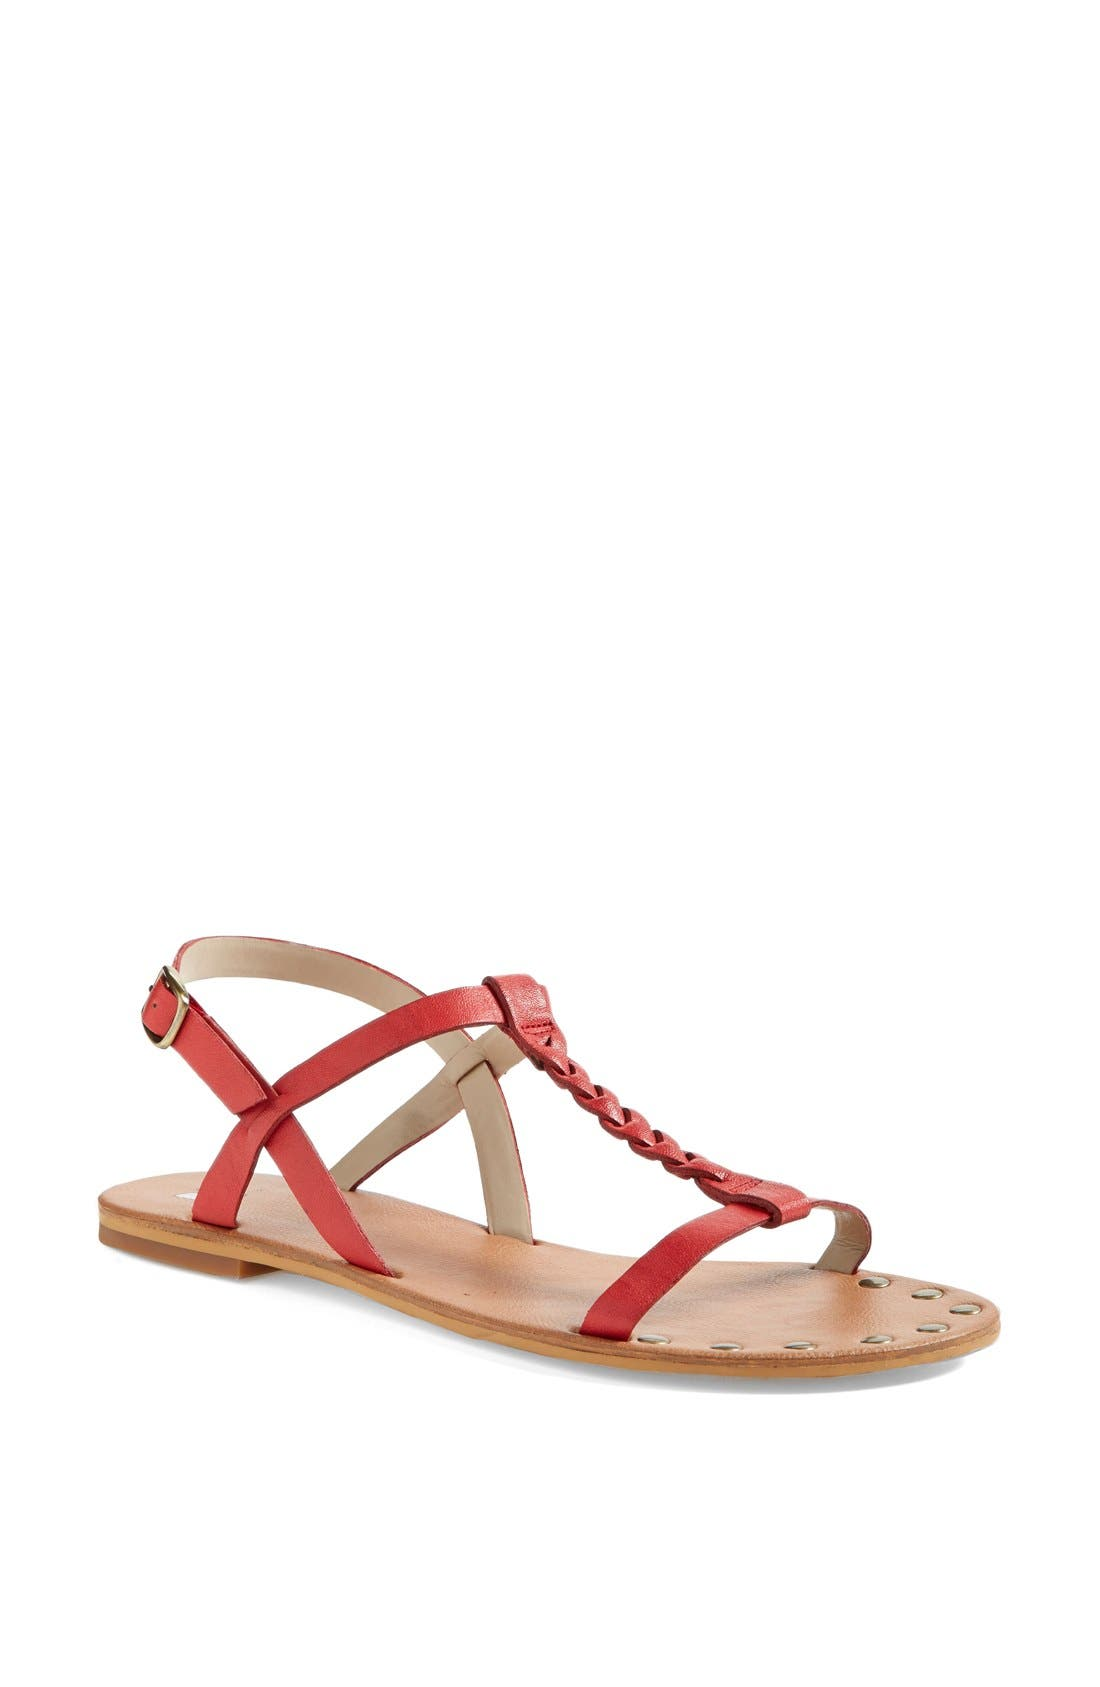 Alternate Image 1 Selected - BP. 'Siam' Sandal